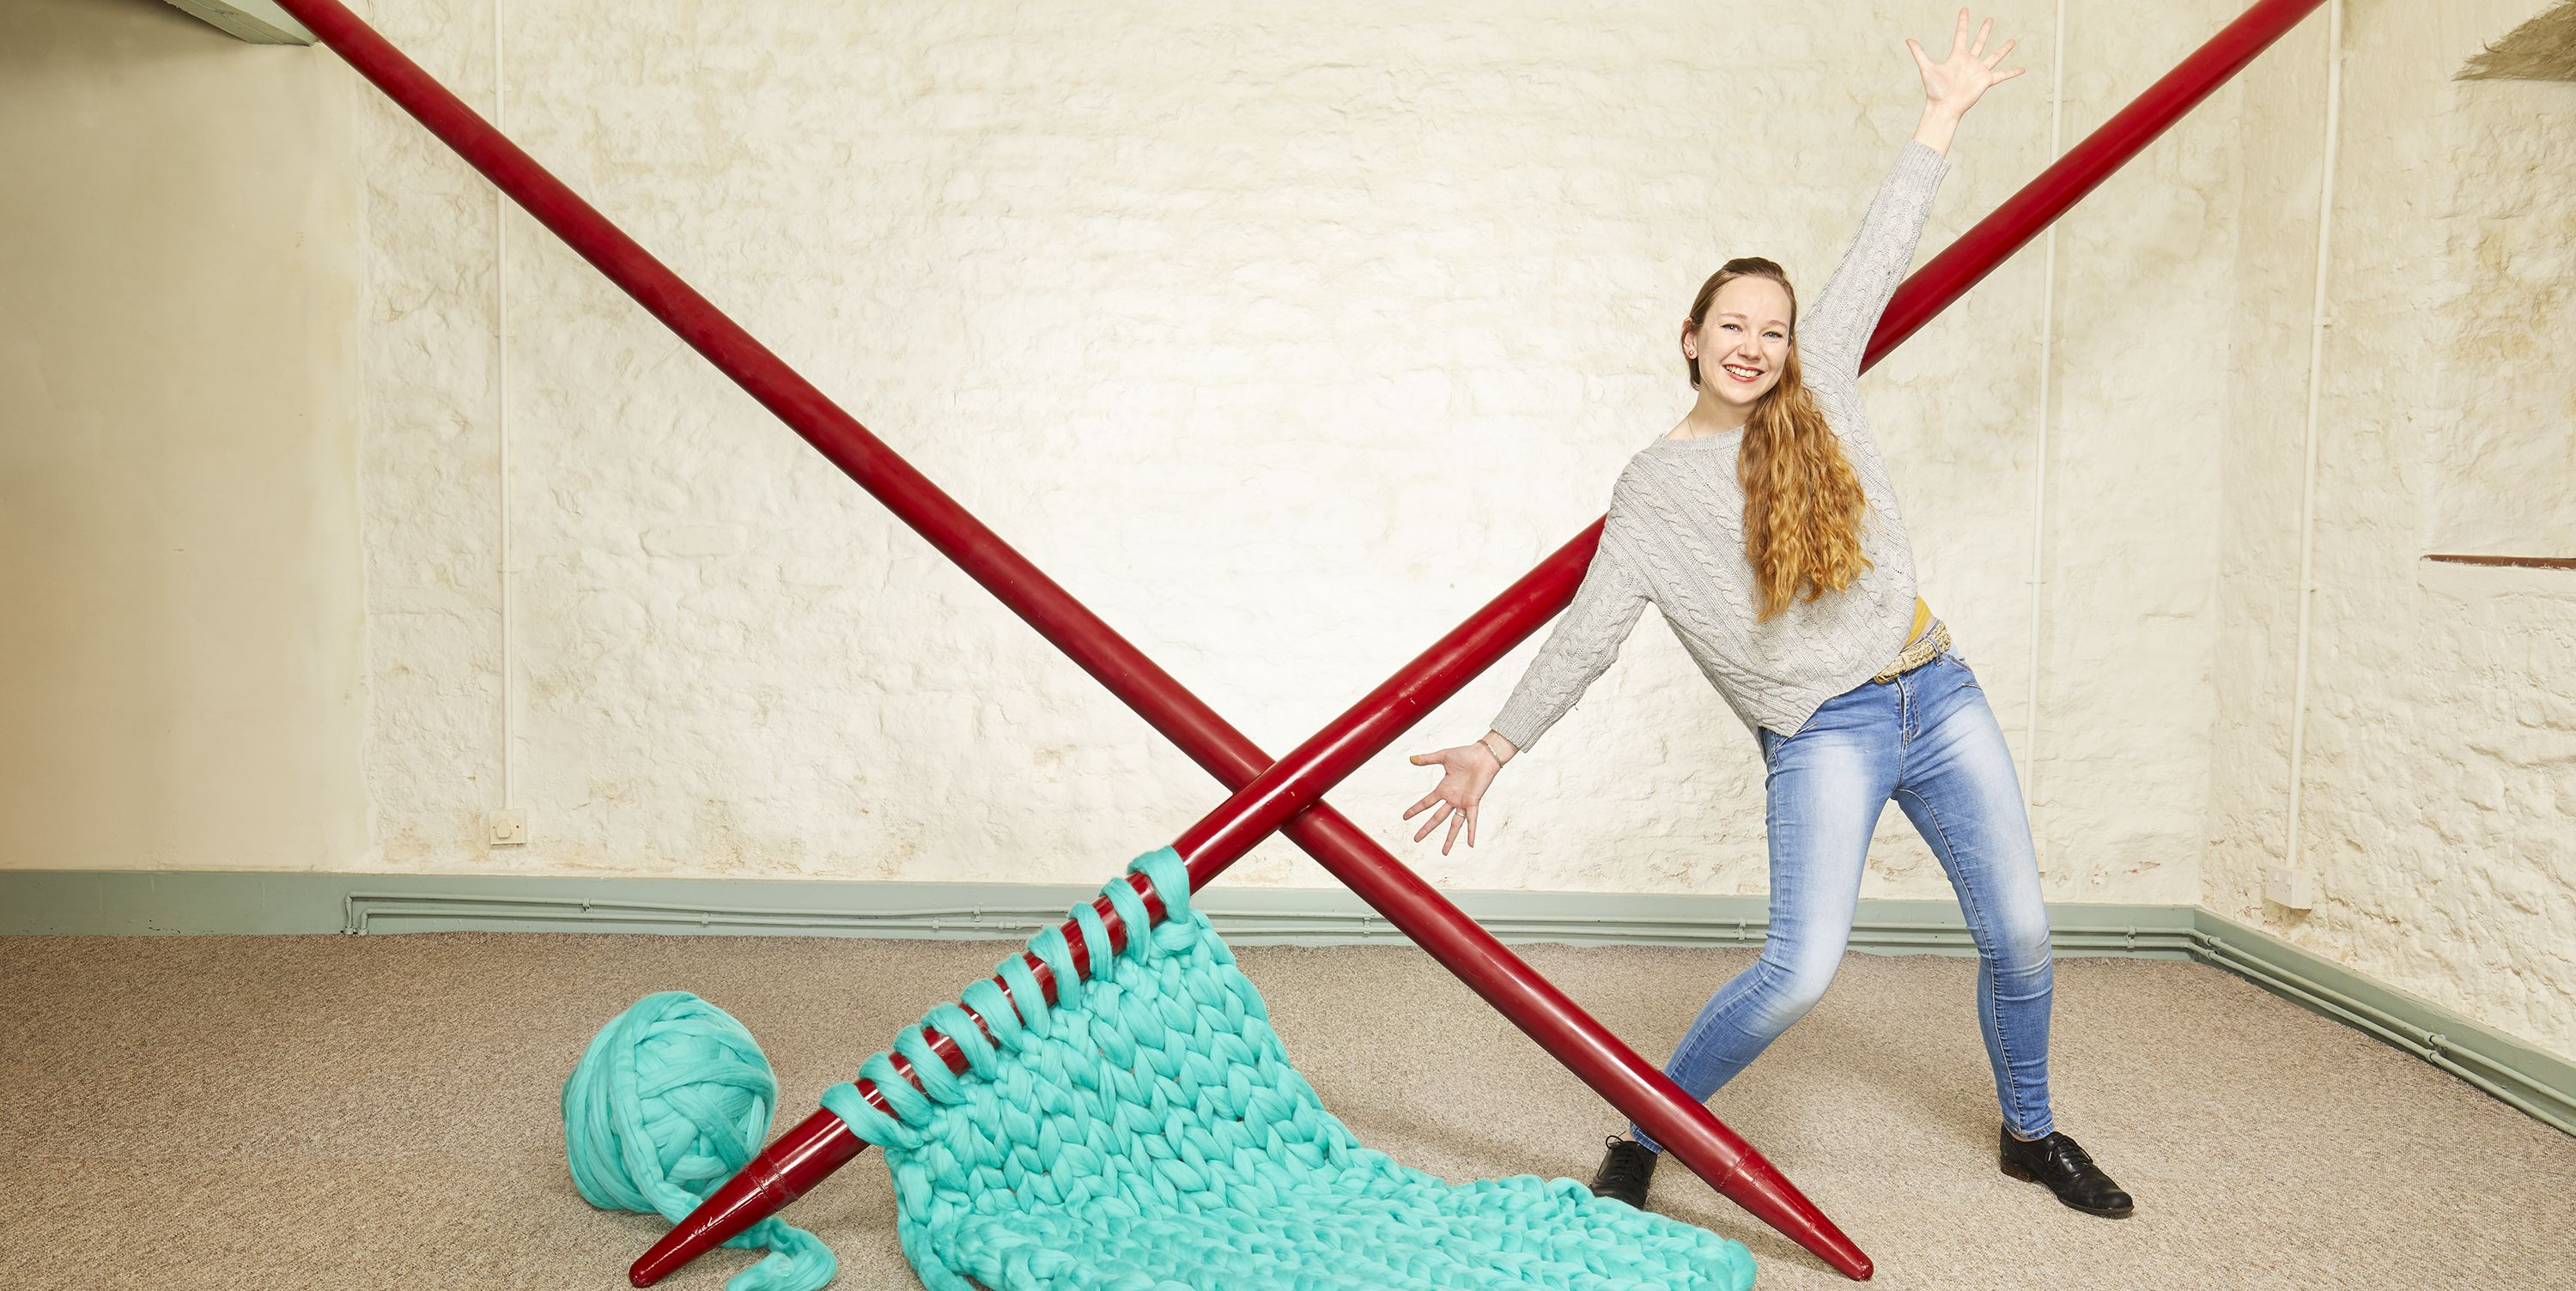 This Art Student broke the Guinness World Record for largest knitting needles